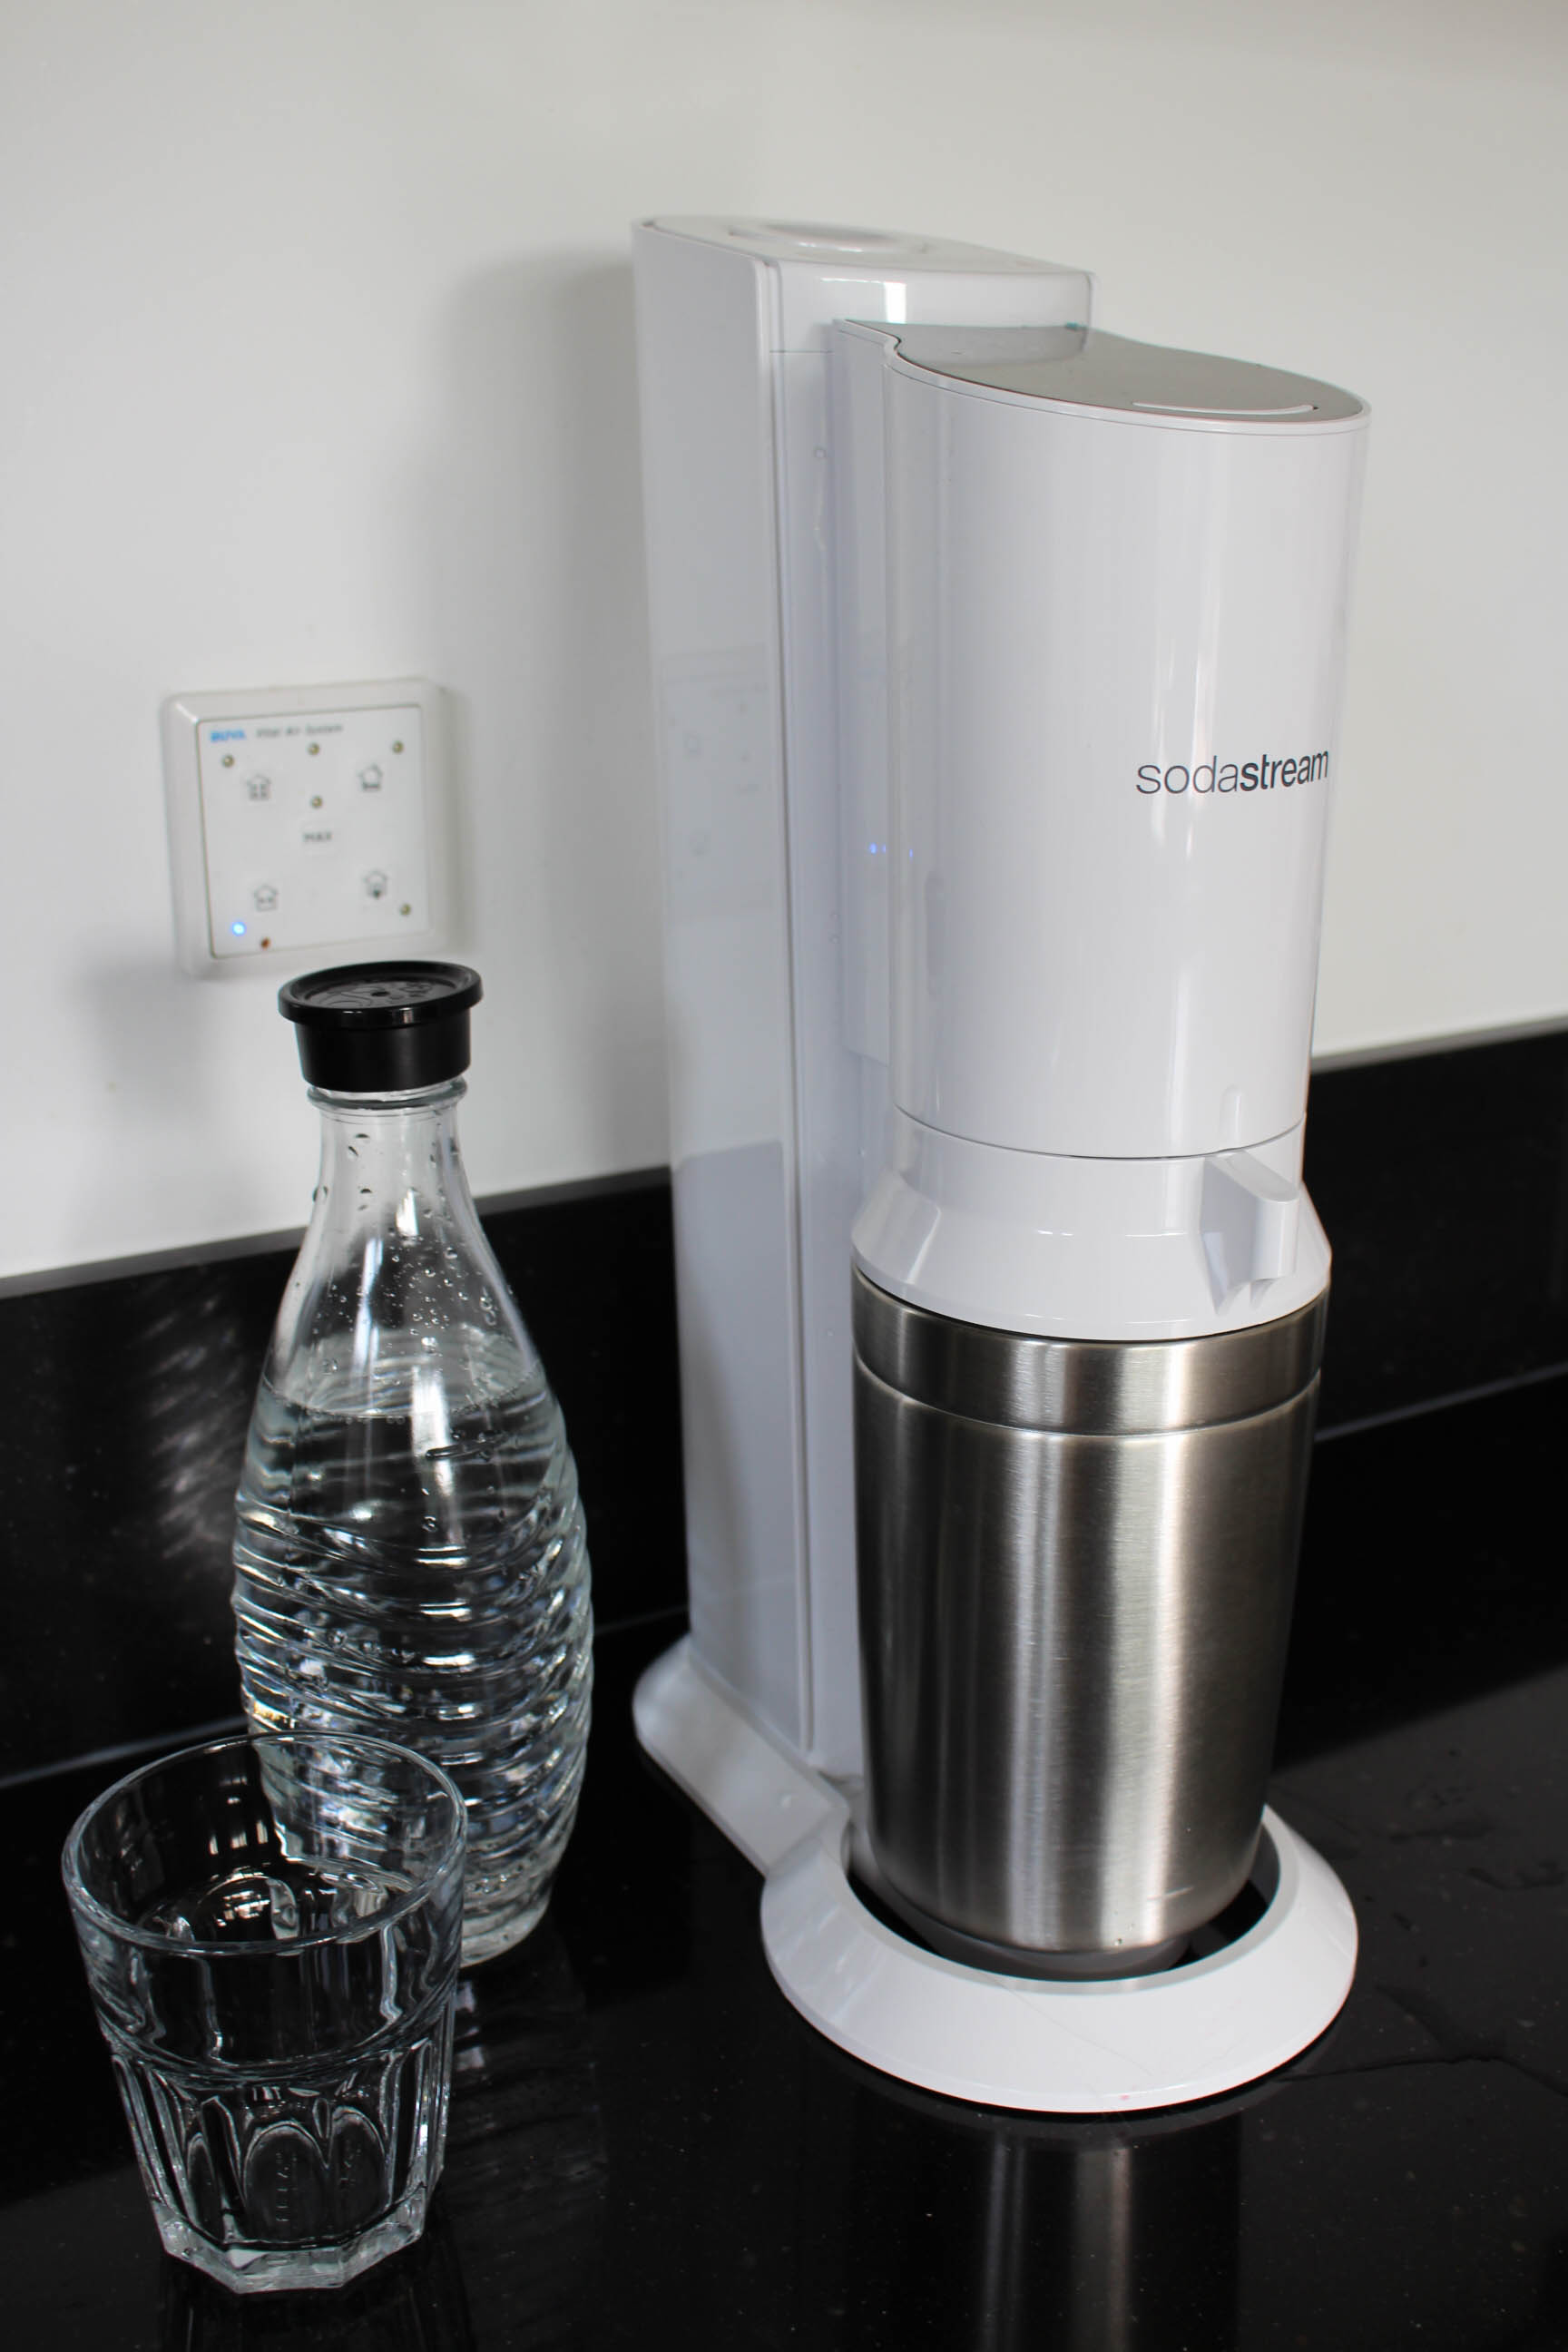 sodastream feelgoodbyfood